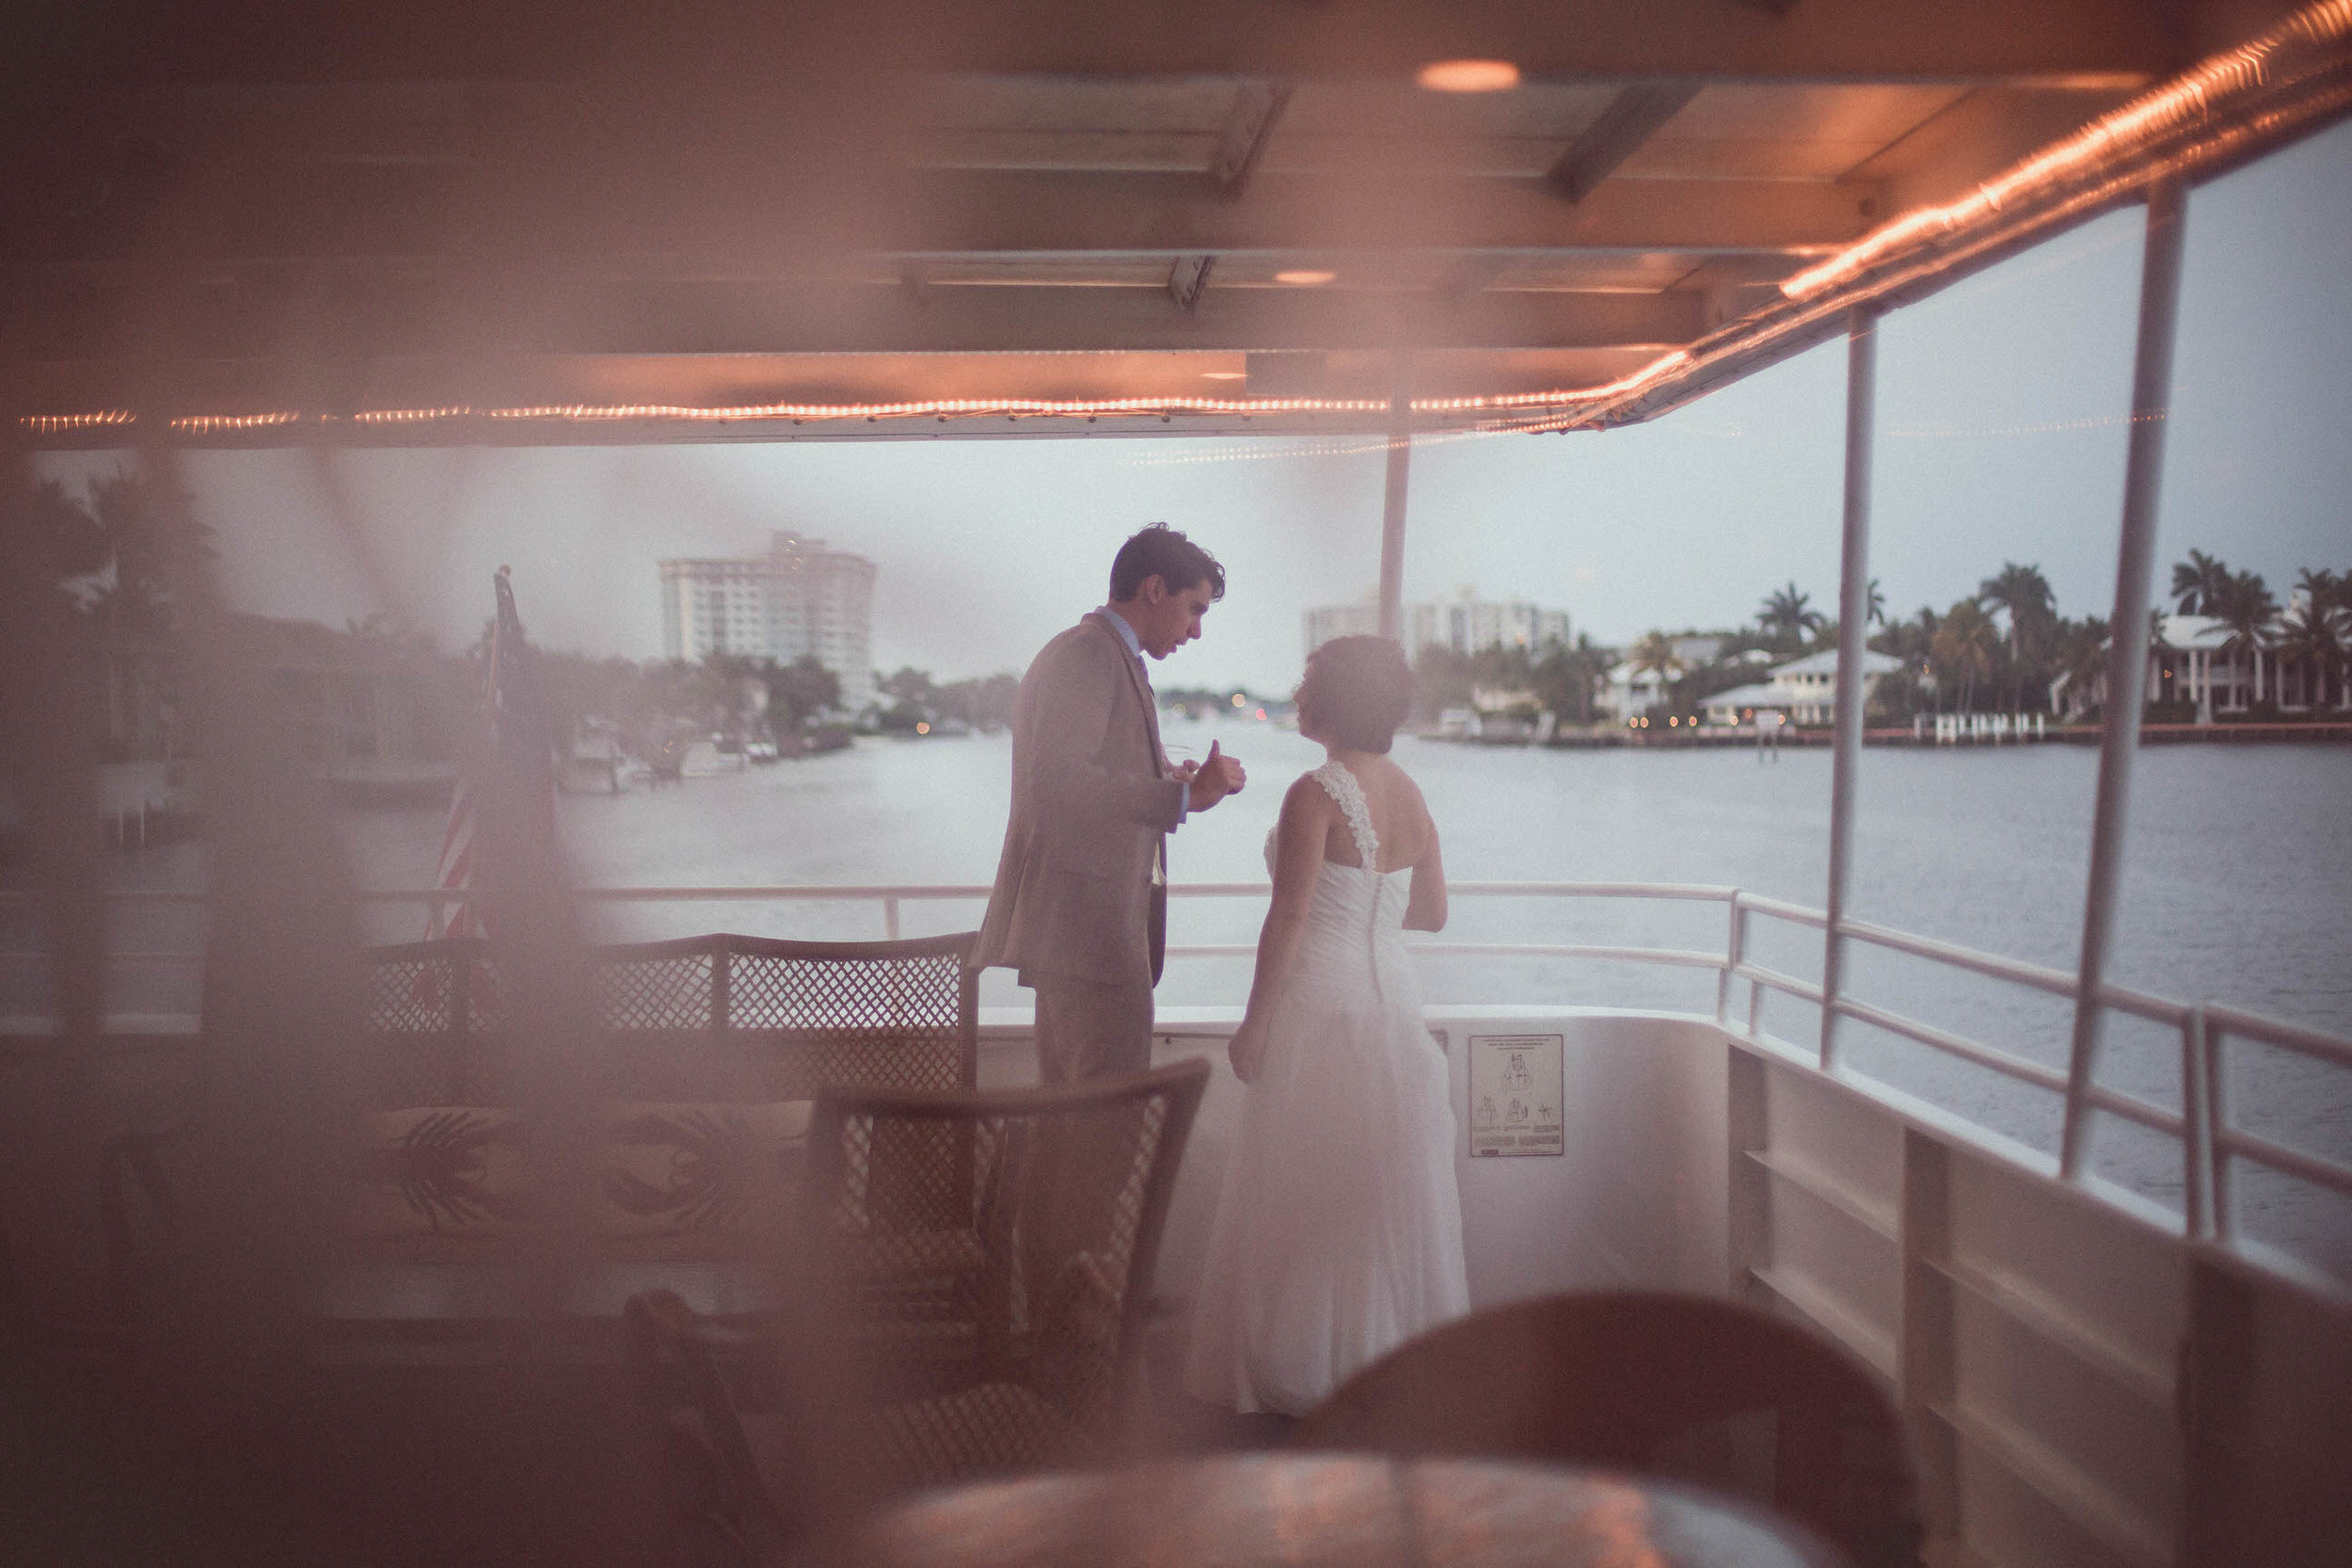 bride-and-groom-moment-deck-lady-delray-tiny-house-photo.jpg